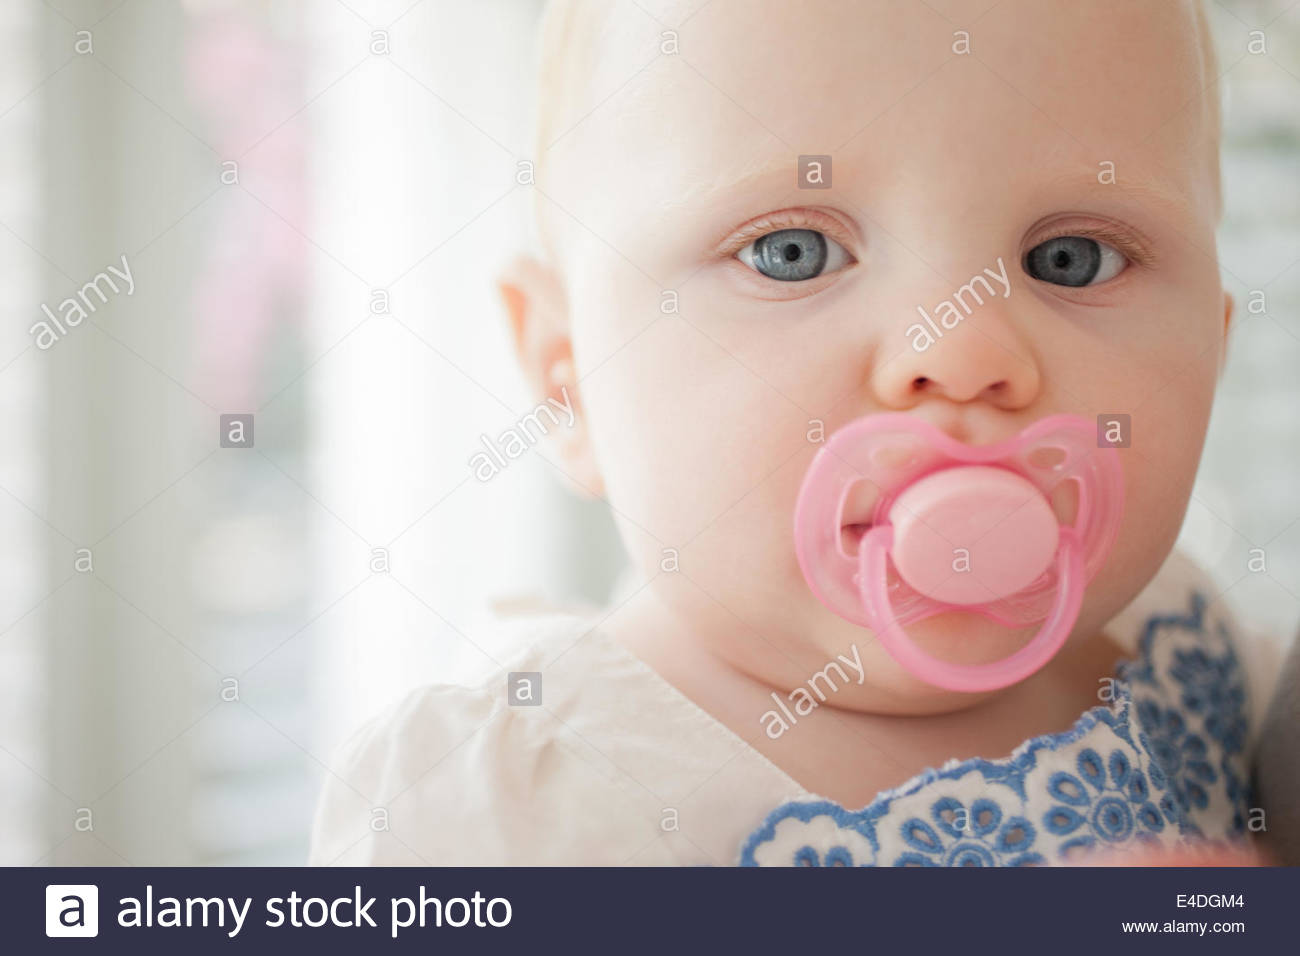 Close up of baby with pink pacifier - Stock Image